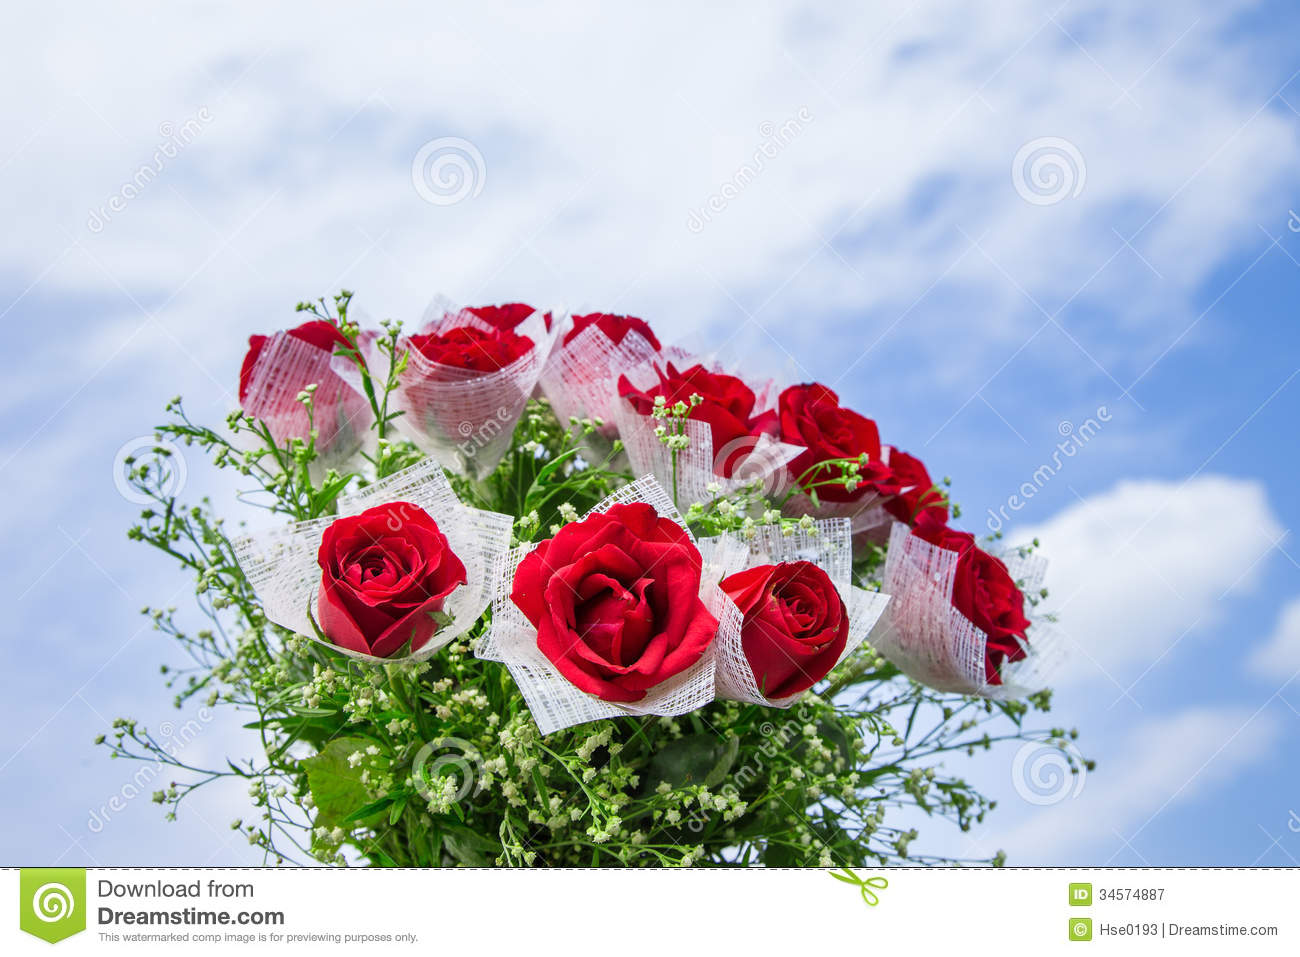 Clipartfest a red rose. Bunch of flowers images download